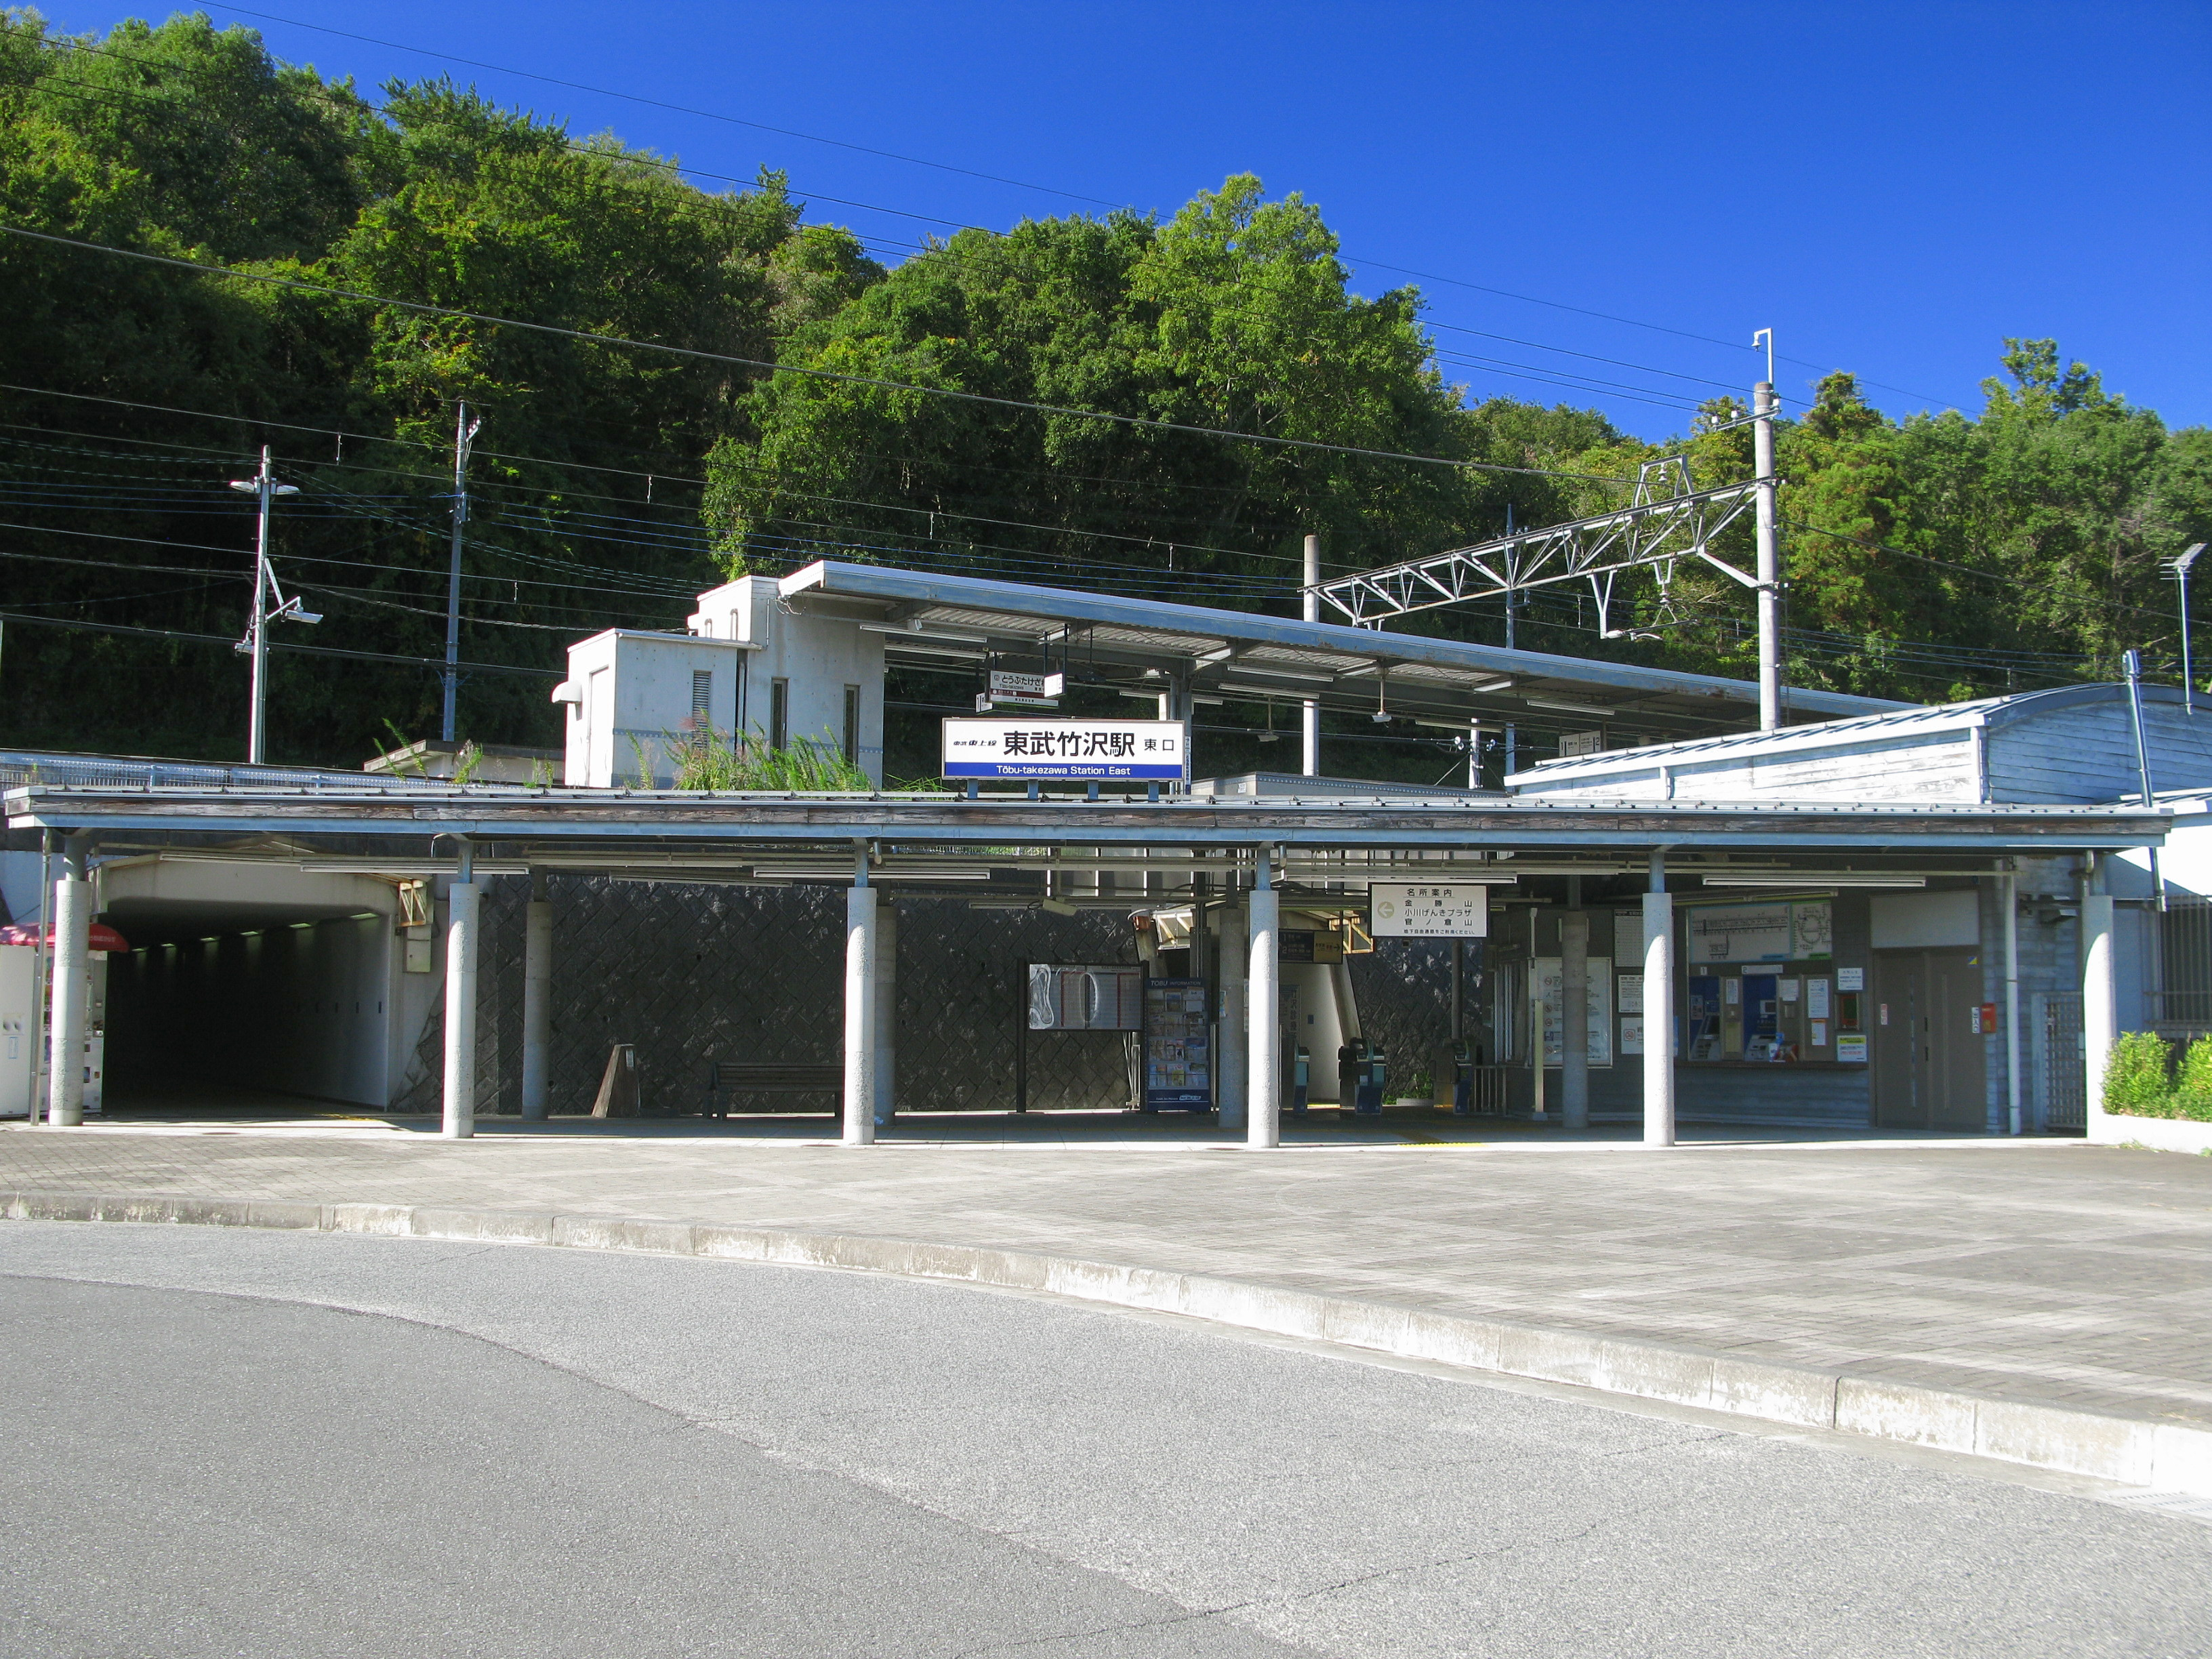 https://upload.wikimedia.org/wikipedia/ja/9/95/Tobu-takezawa_Station_East_Entrance_1.JPG